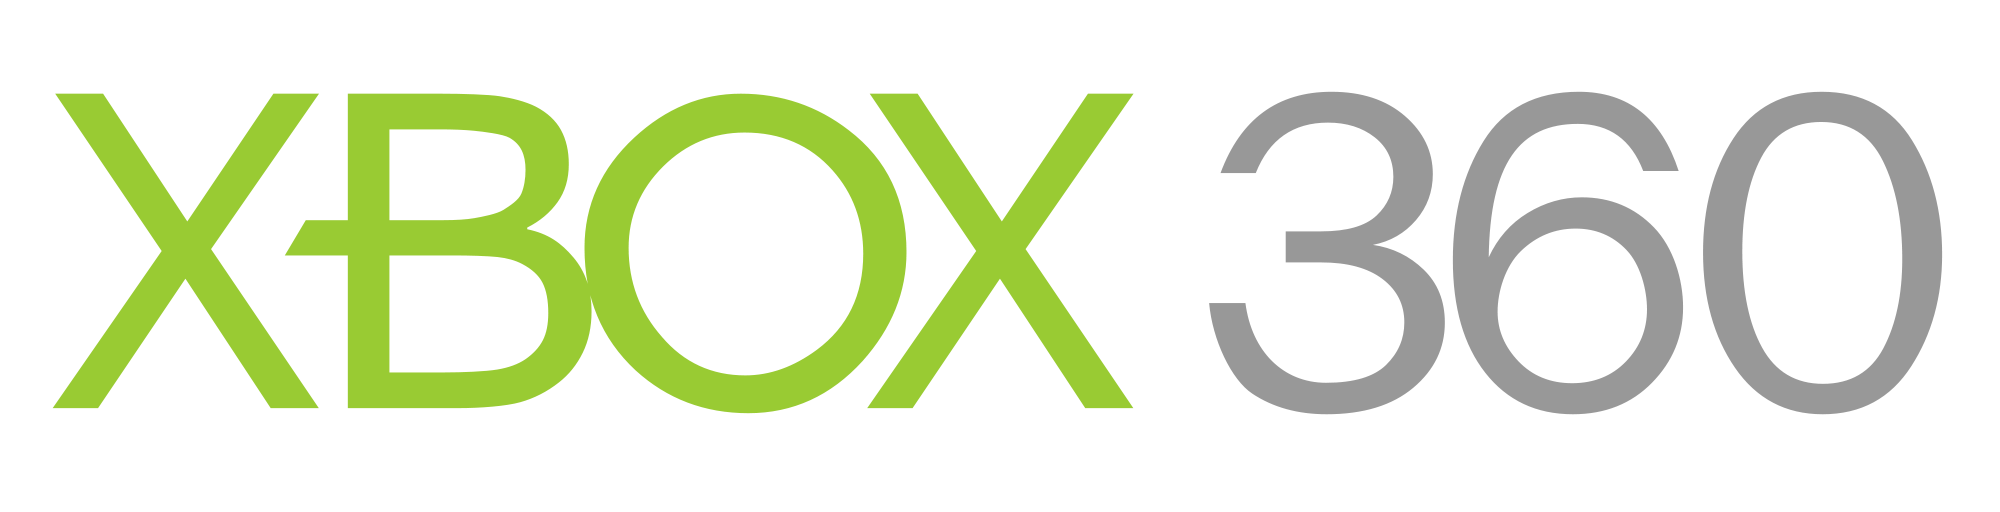 Xbox live logo png. File svg wikimedia commons